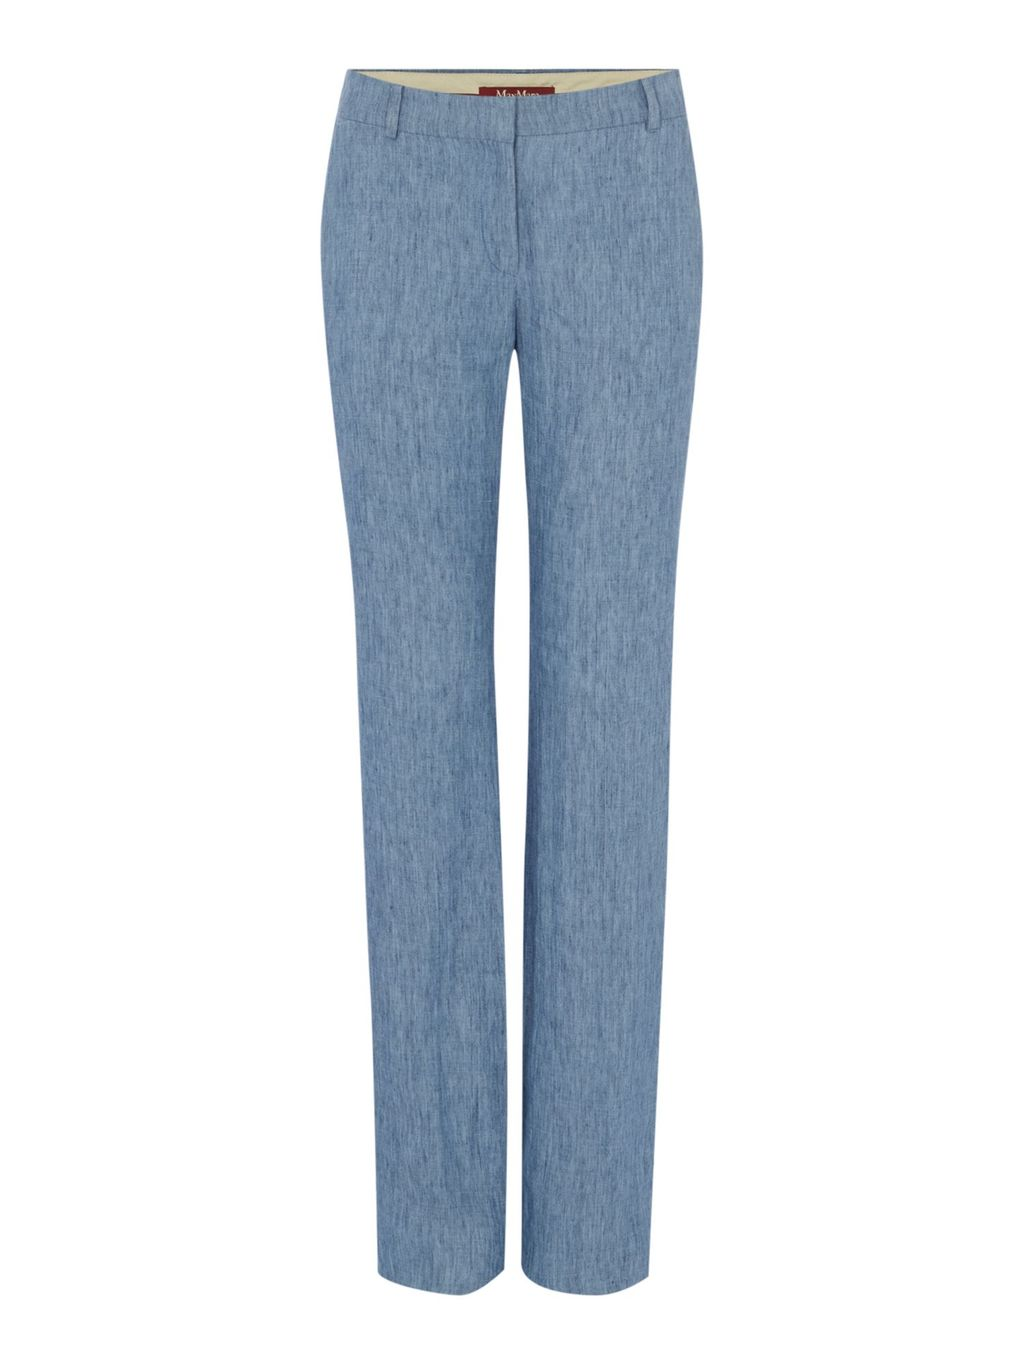 Afoso Denim Effect Trousers, Blue - length: standard; pattern: plain; waist: high rise; predominant colour: denim; fit: straight leg; pattern type: fabric; texture group: woven light midweight; style: standard; fibres: viscose/rayon - mix; occasions: creative work; season: s/s 2016; wardrobe: highlight